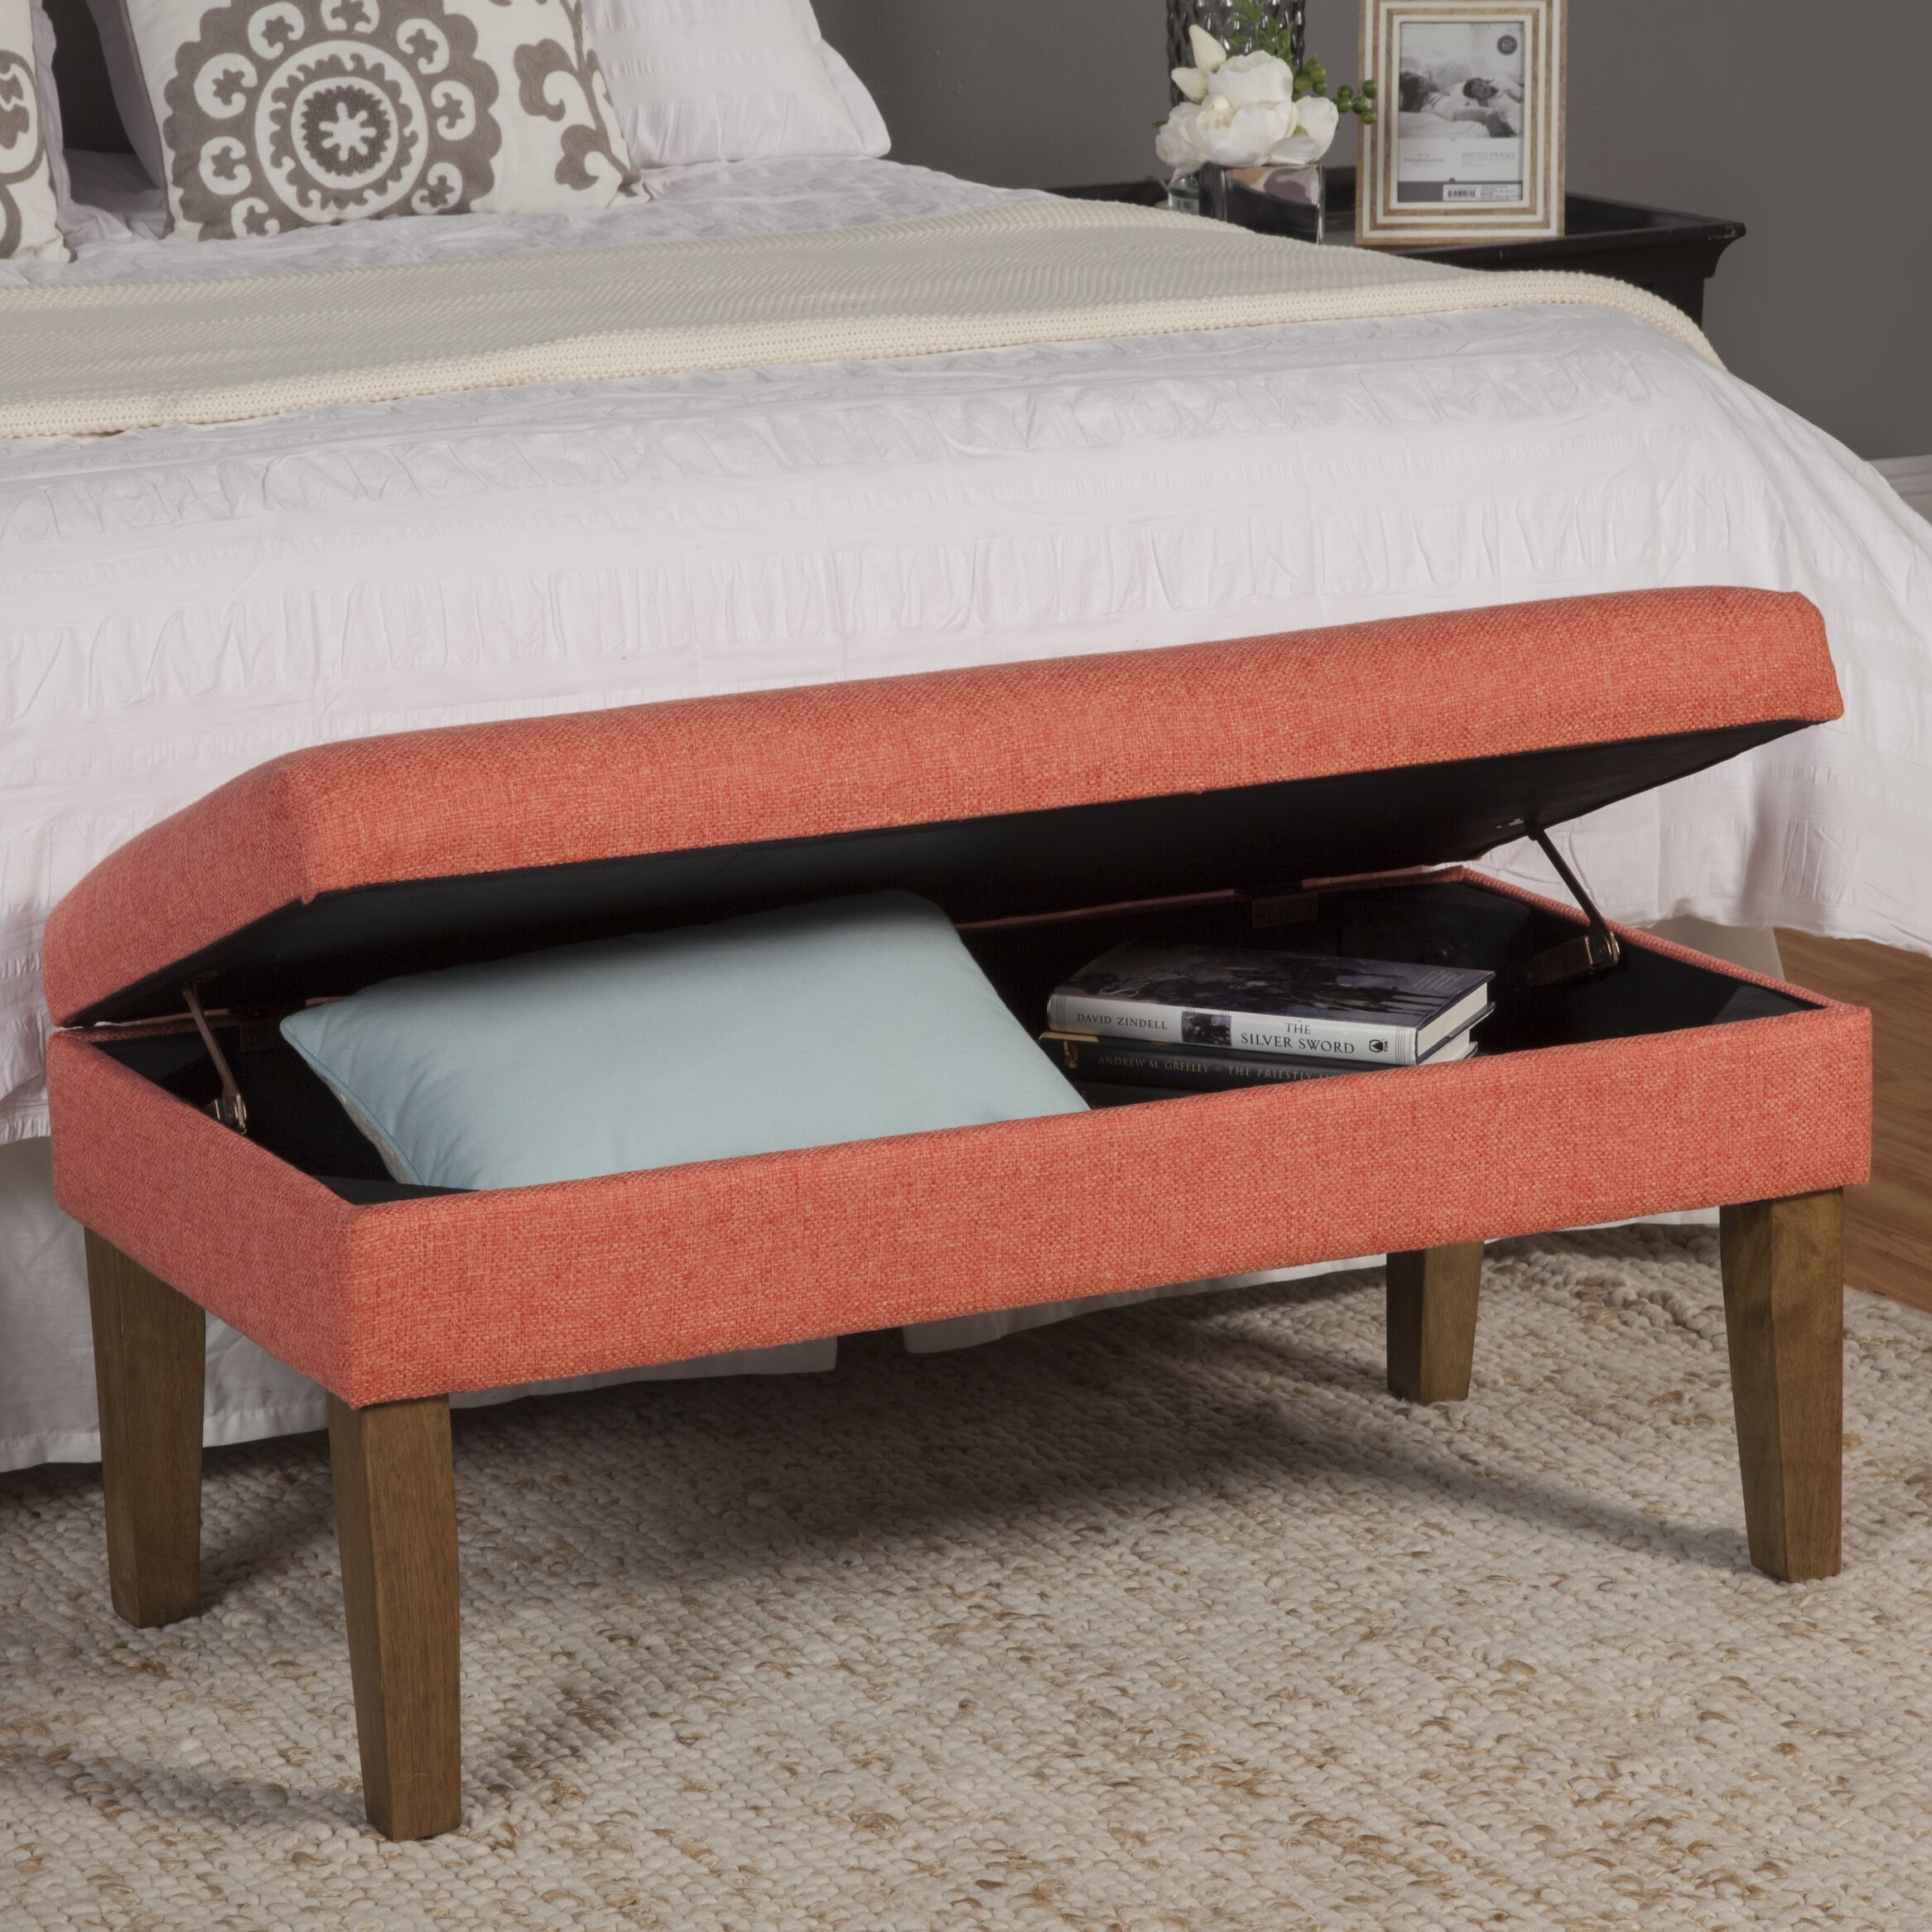 Wildon home axtell decorative storage bench reviews wayfair Decorative benches